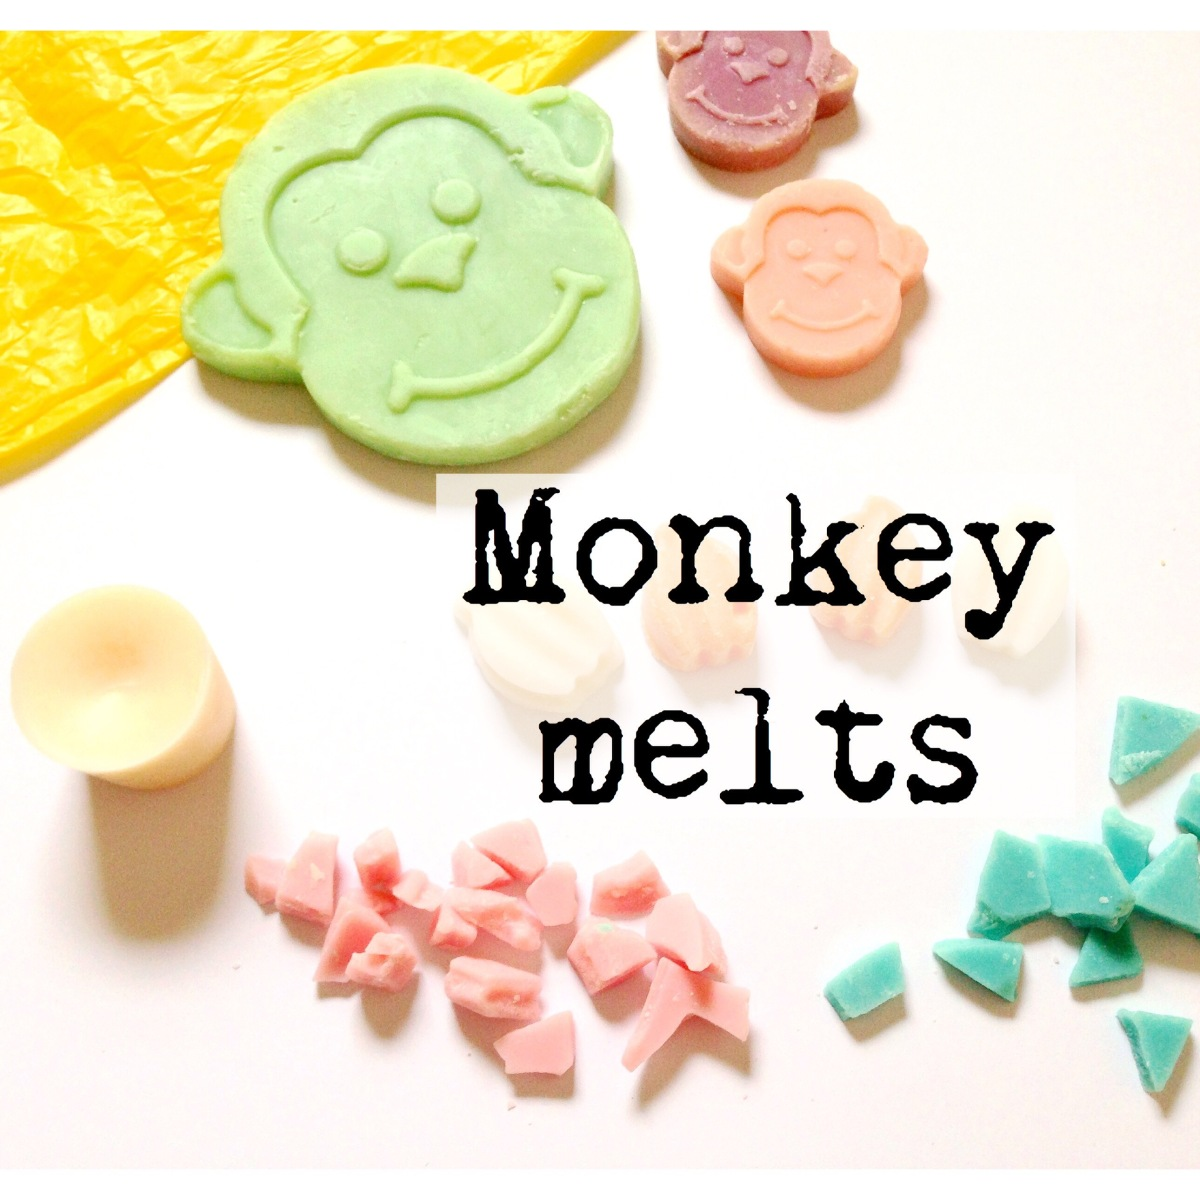 Monkey melts